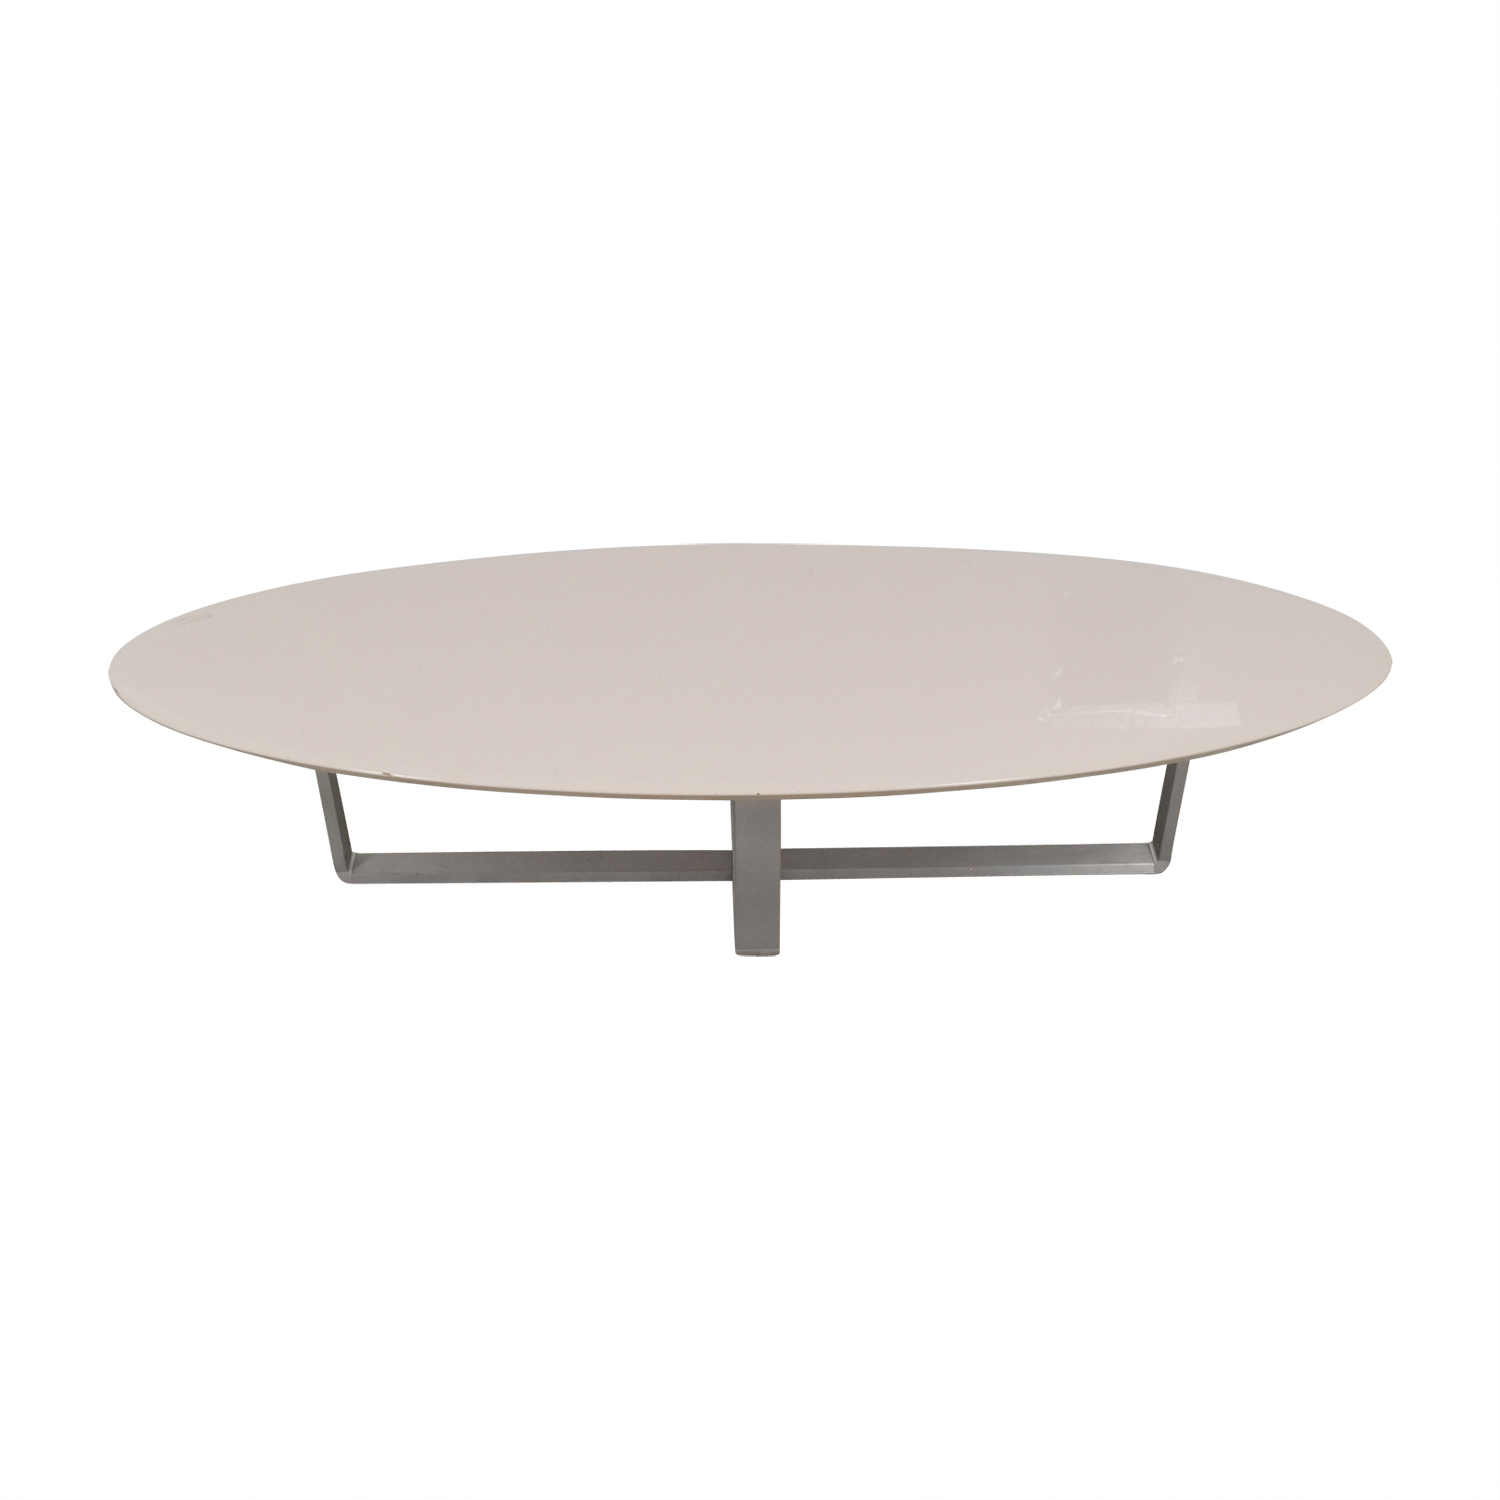 Argo Furniture Argo Furniture White Lacquer Oval Coffee Table price